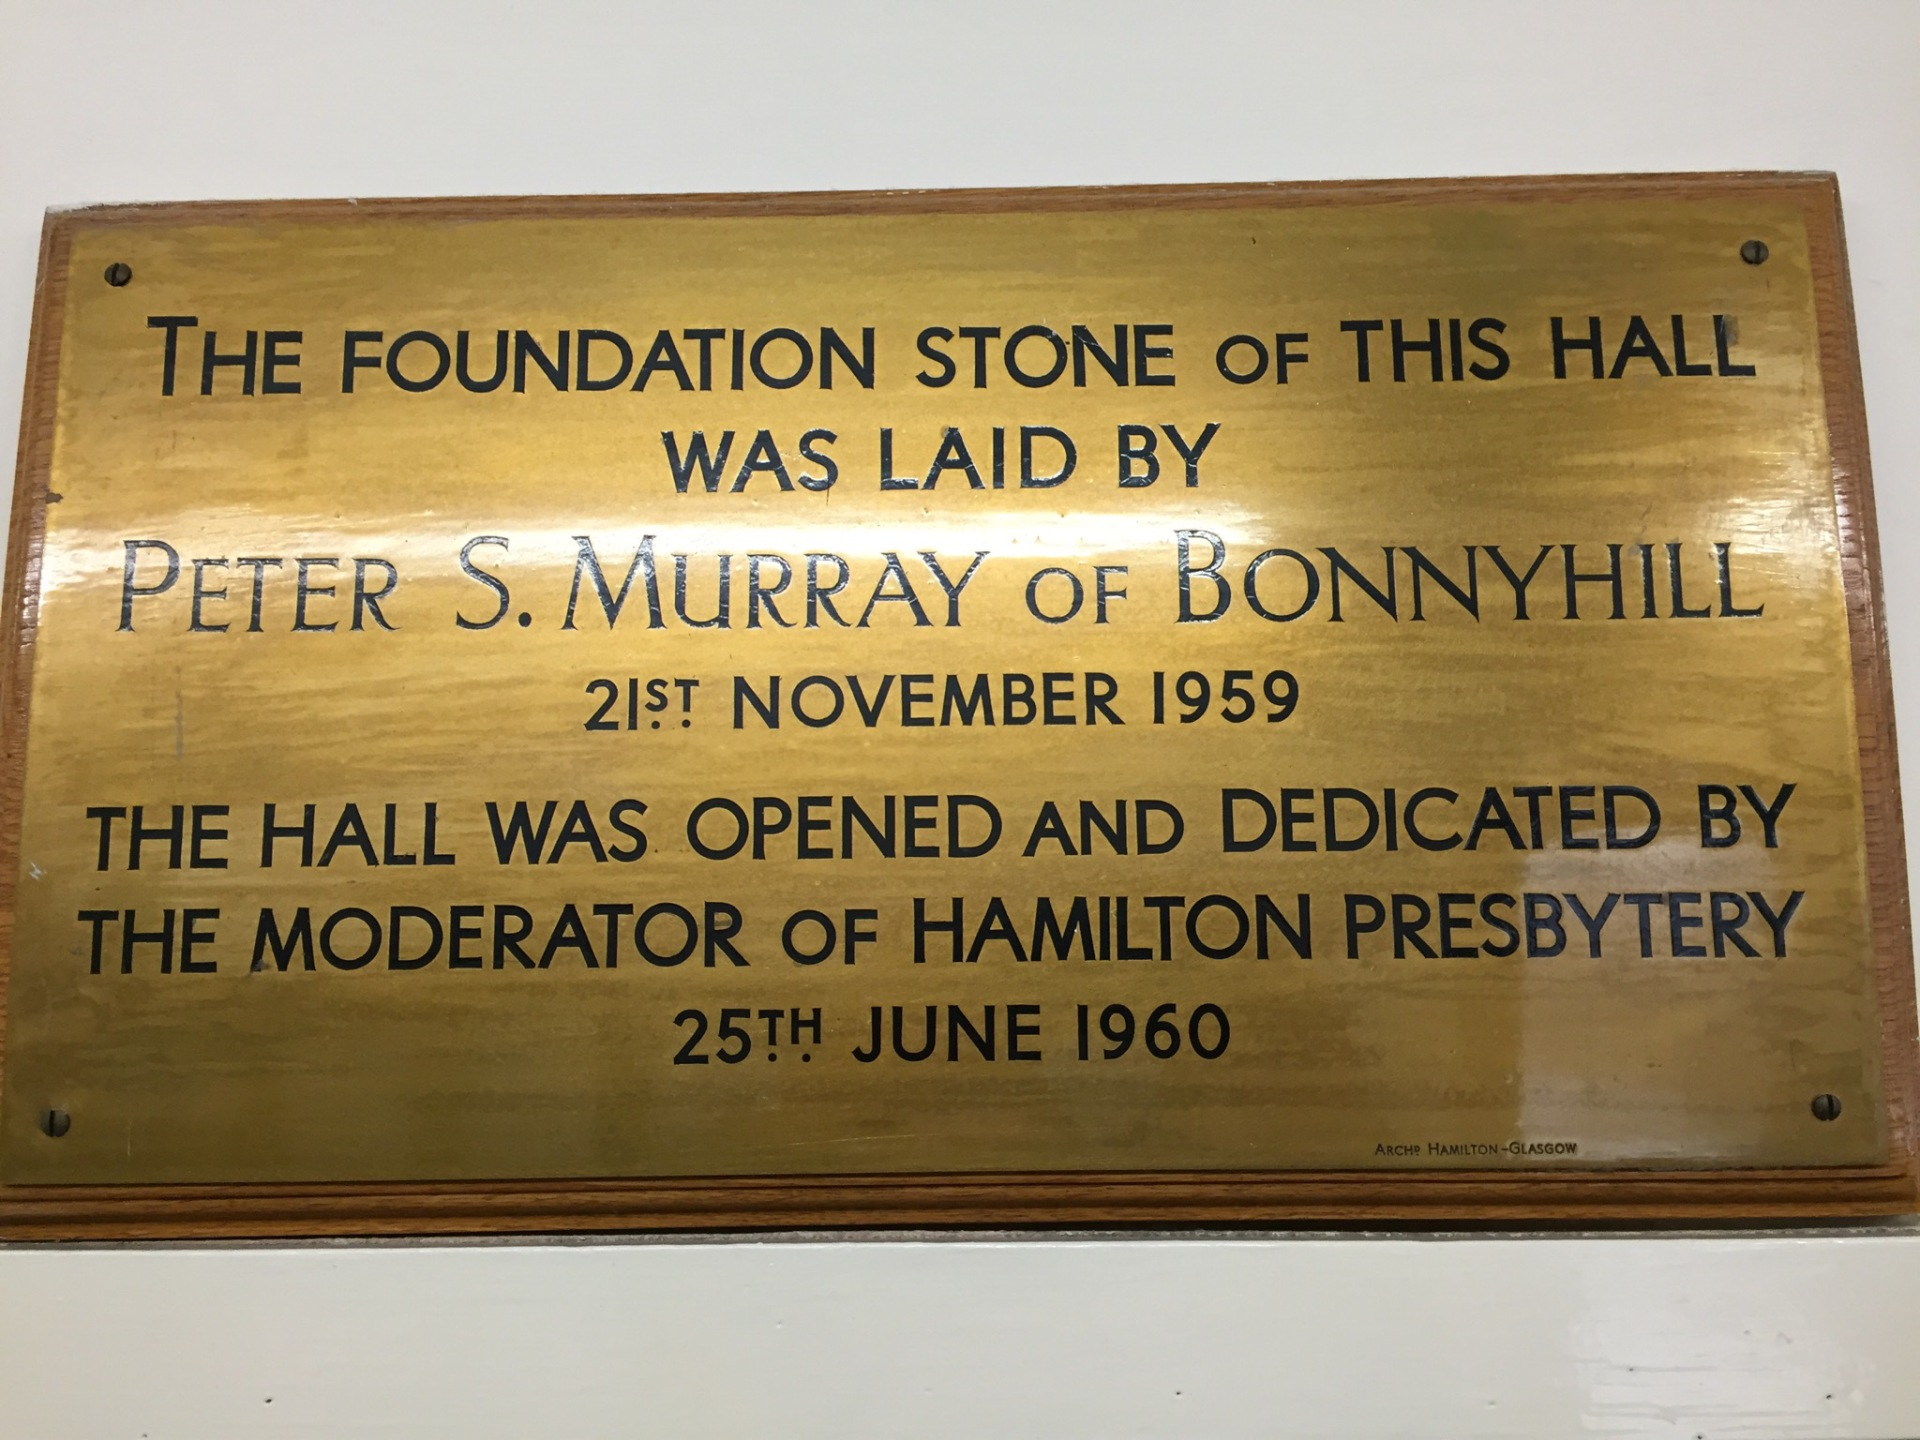 Plaque marking laying of foundation stone